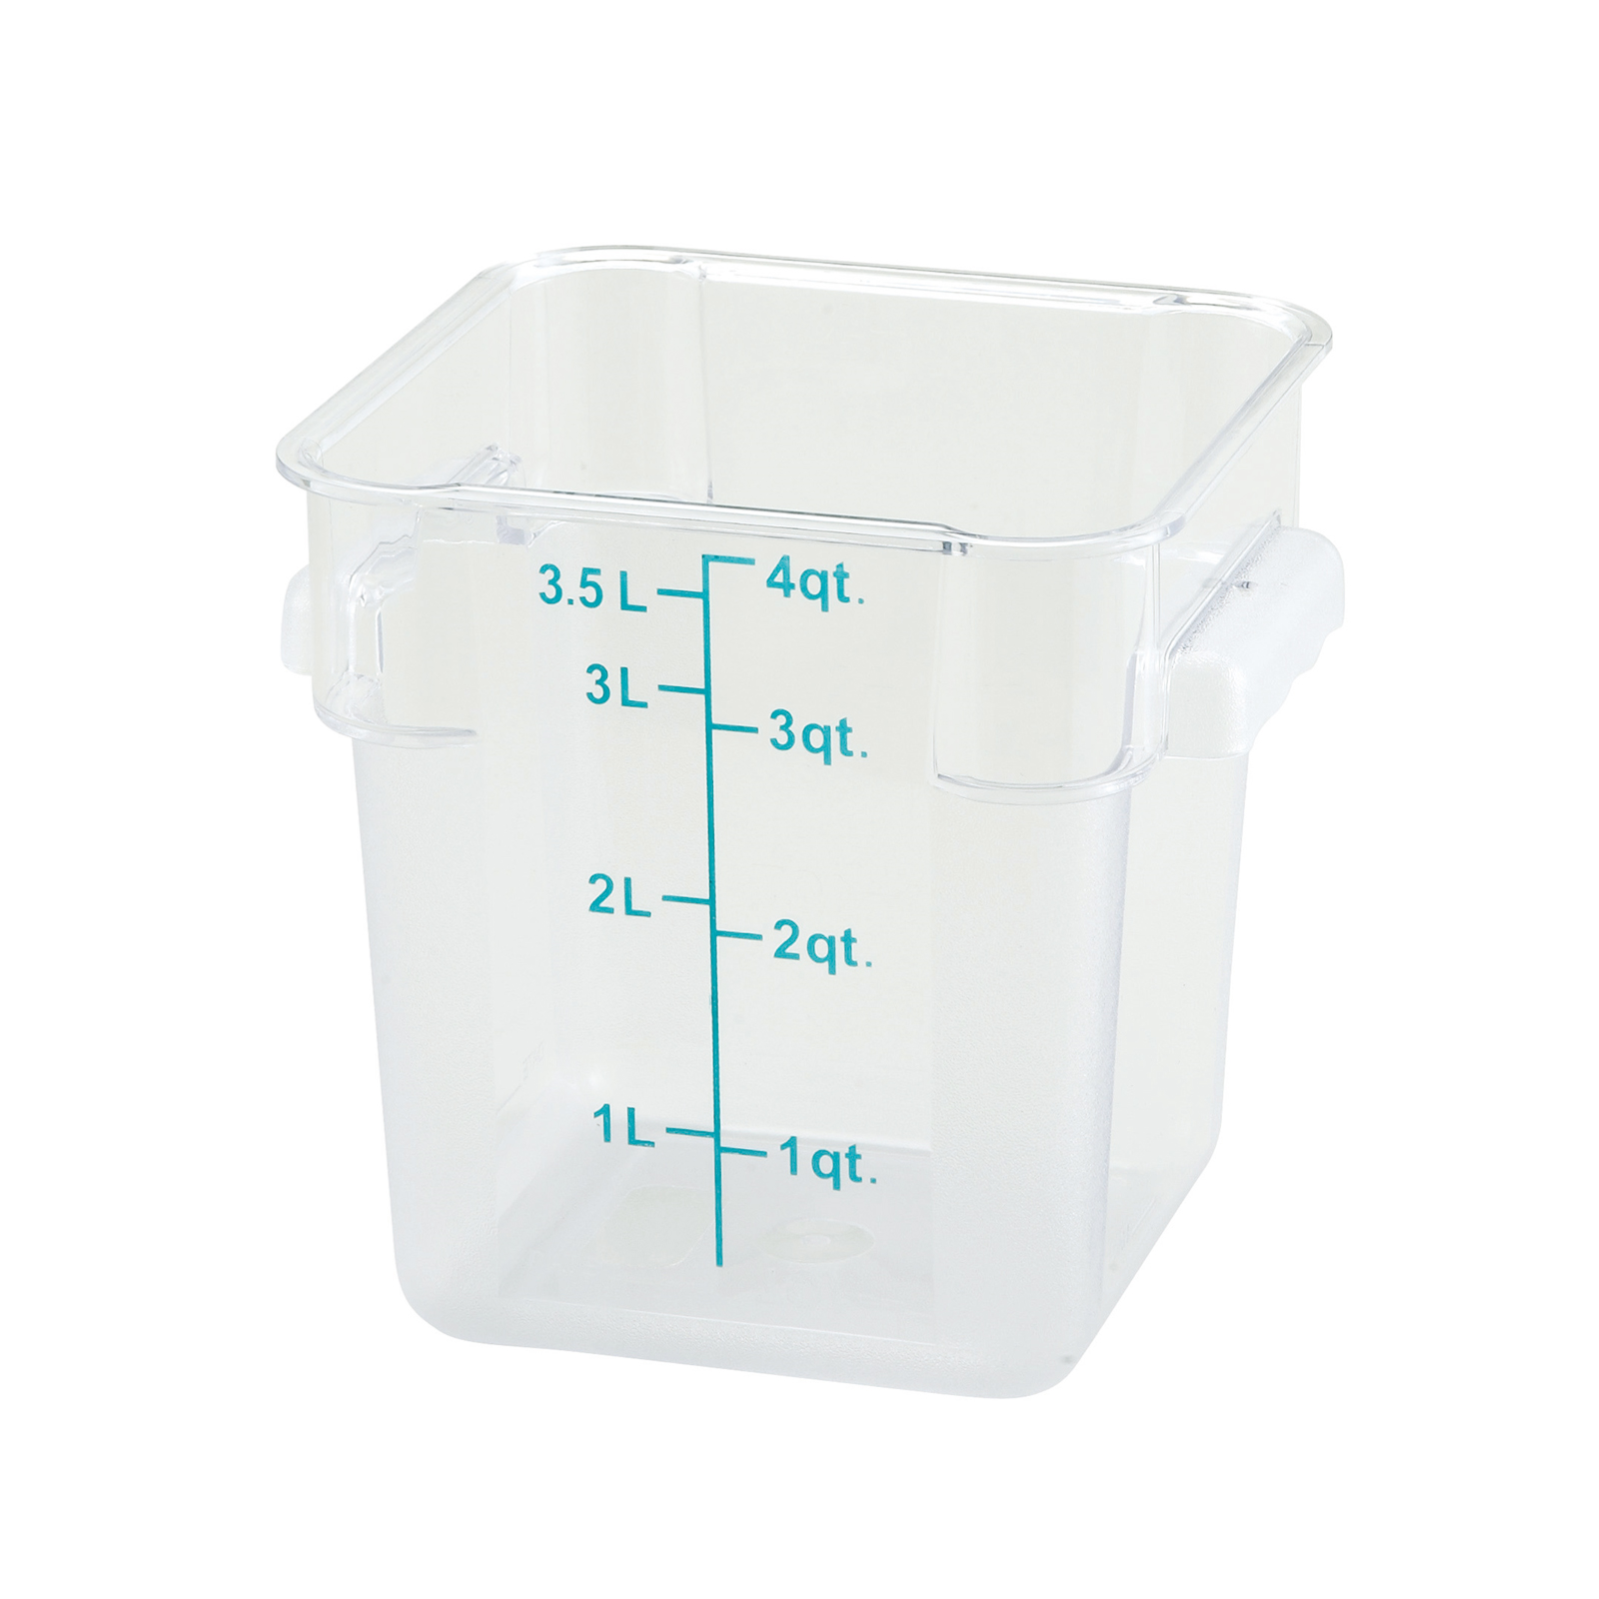 2700-41 Winco Food Storage Container 4qt square Clear